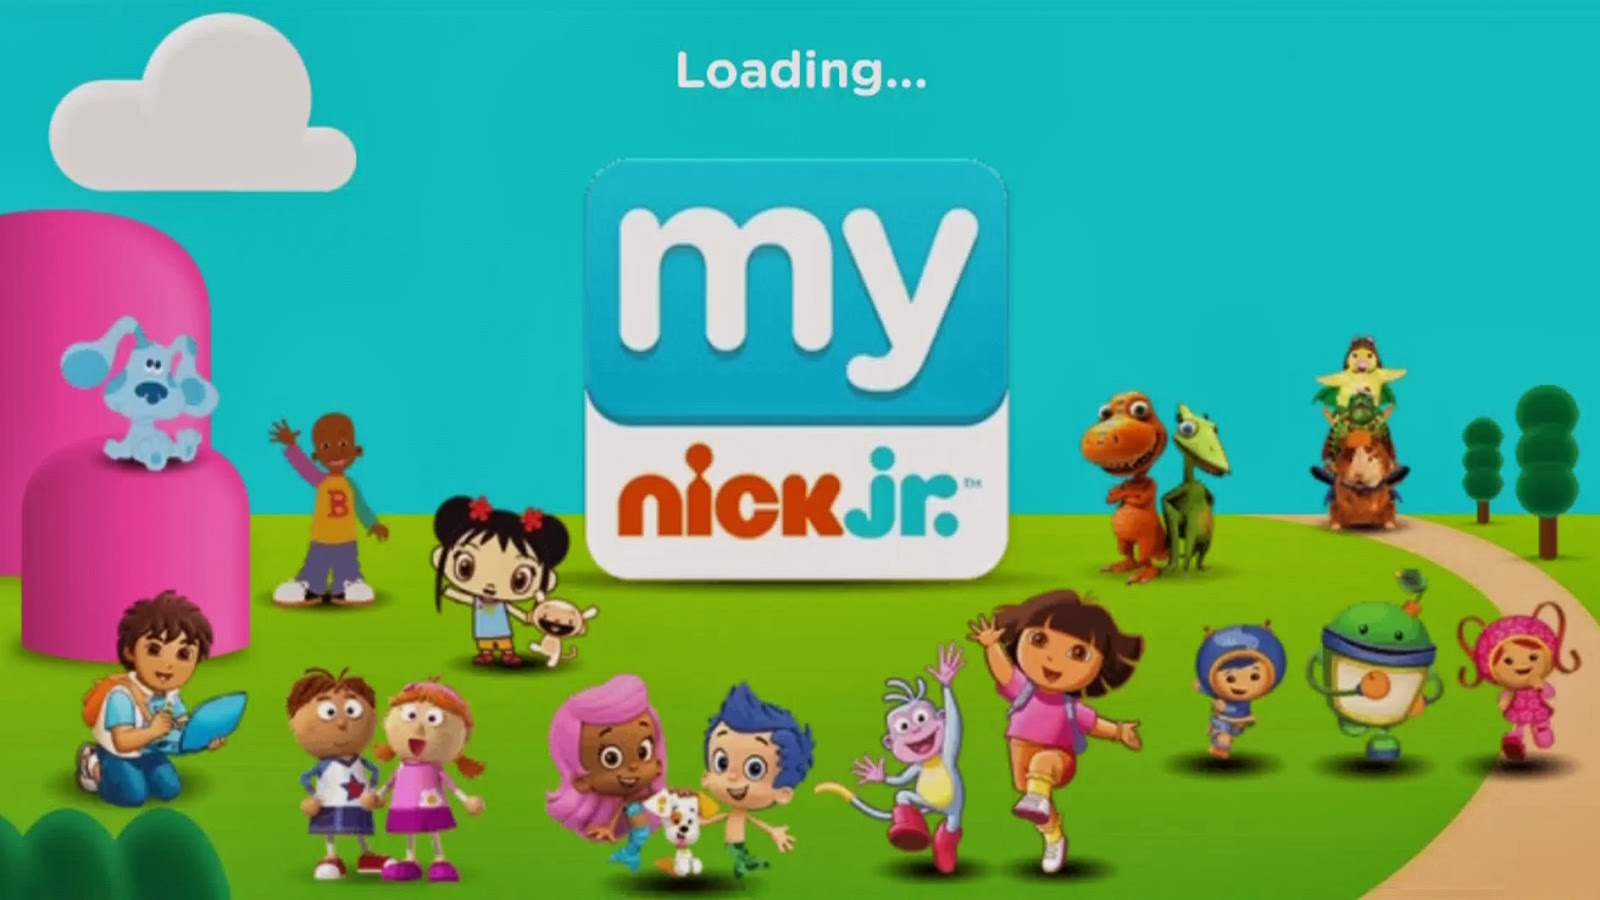 nickalive!: nickelodeon uk and virgin media launch my nick jr. app